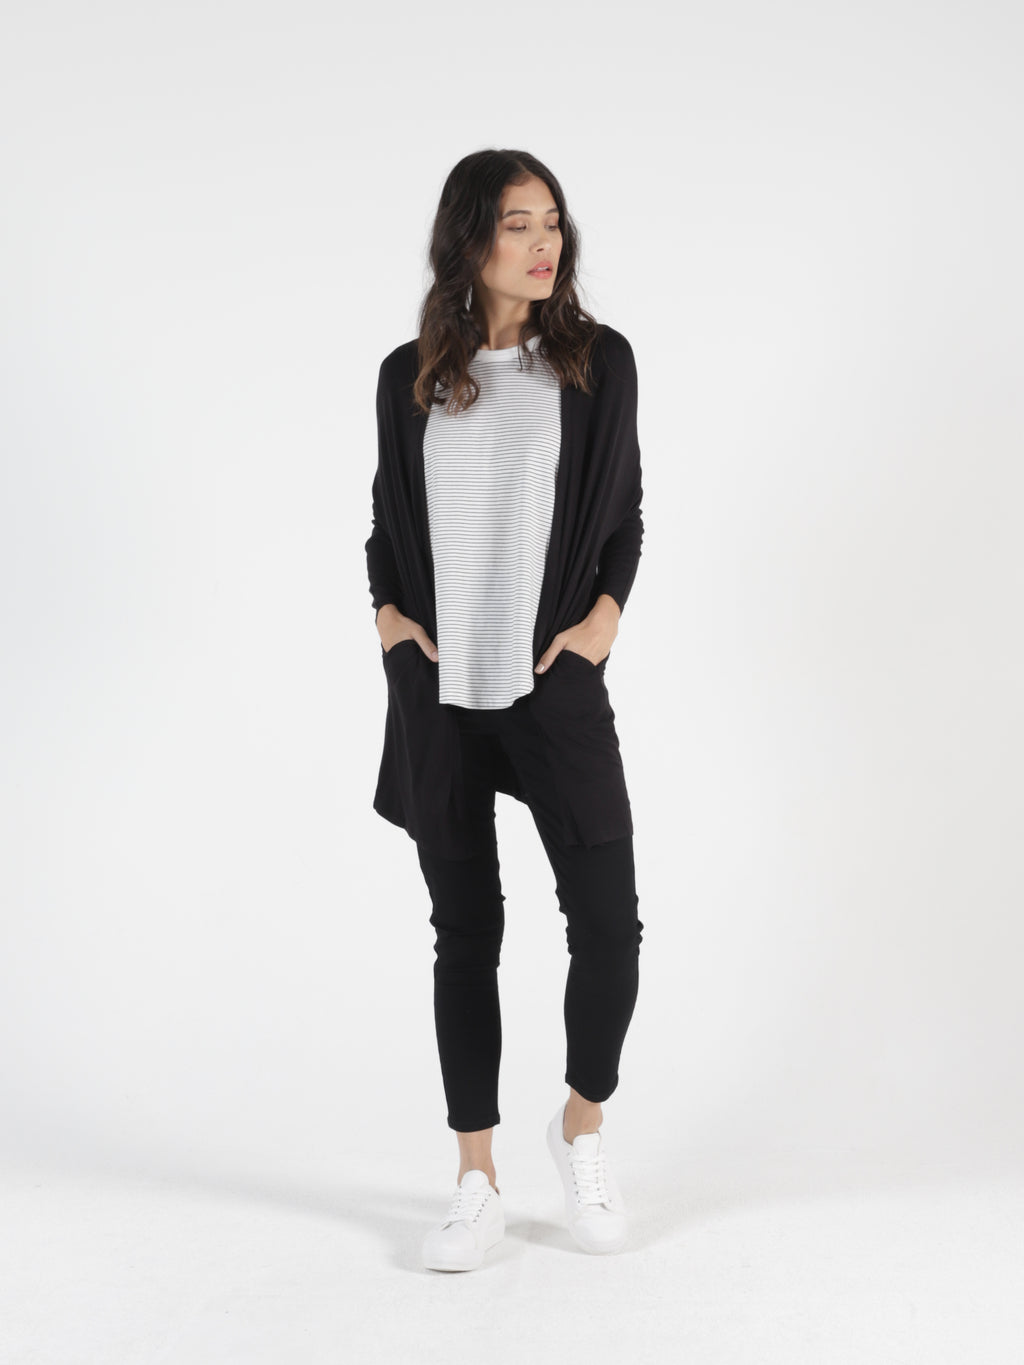 Betty Basics | Como Cardigan | Salt & Sand Women's Clothing & Accessories Inverloch